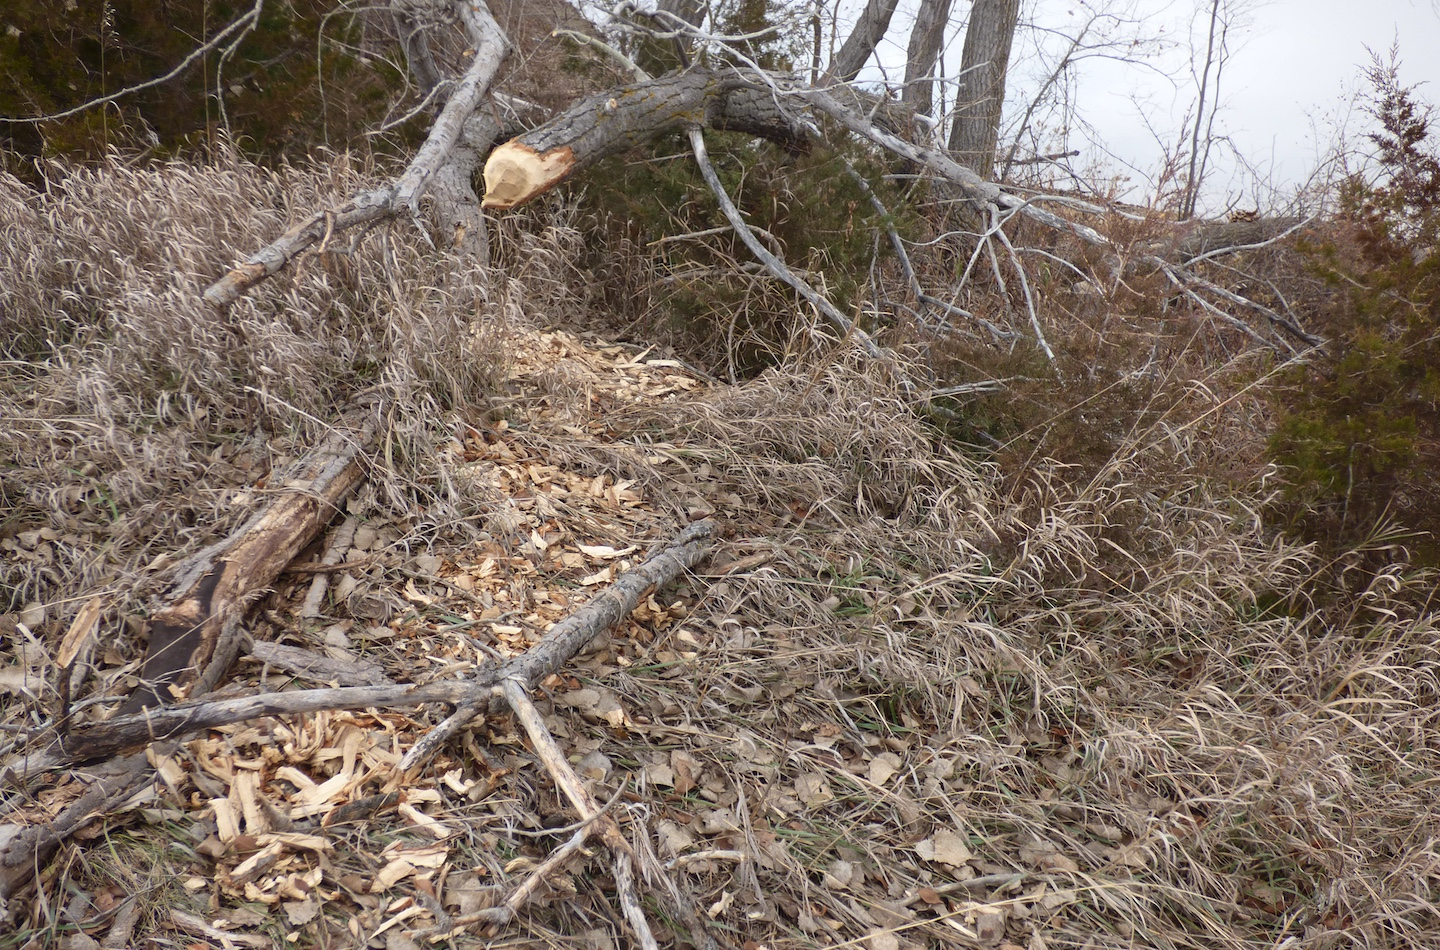 Beavers eat wood and also use tree limbs to build their dams.